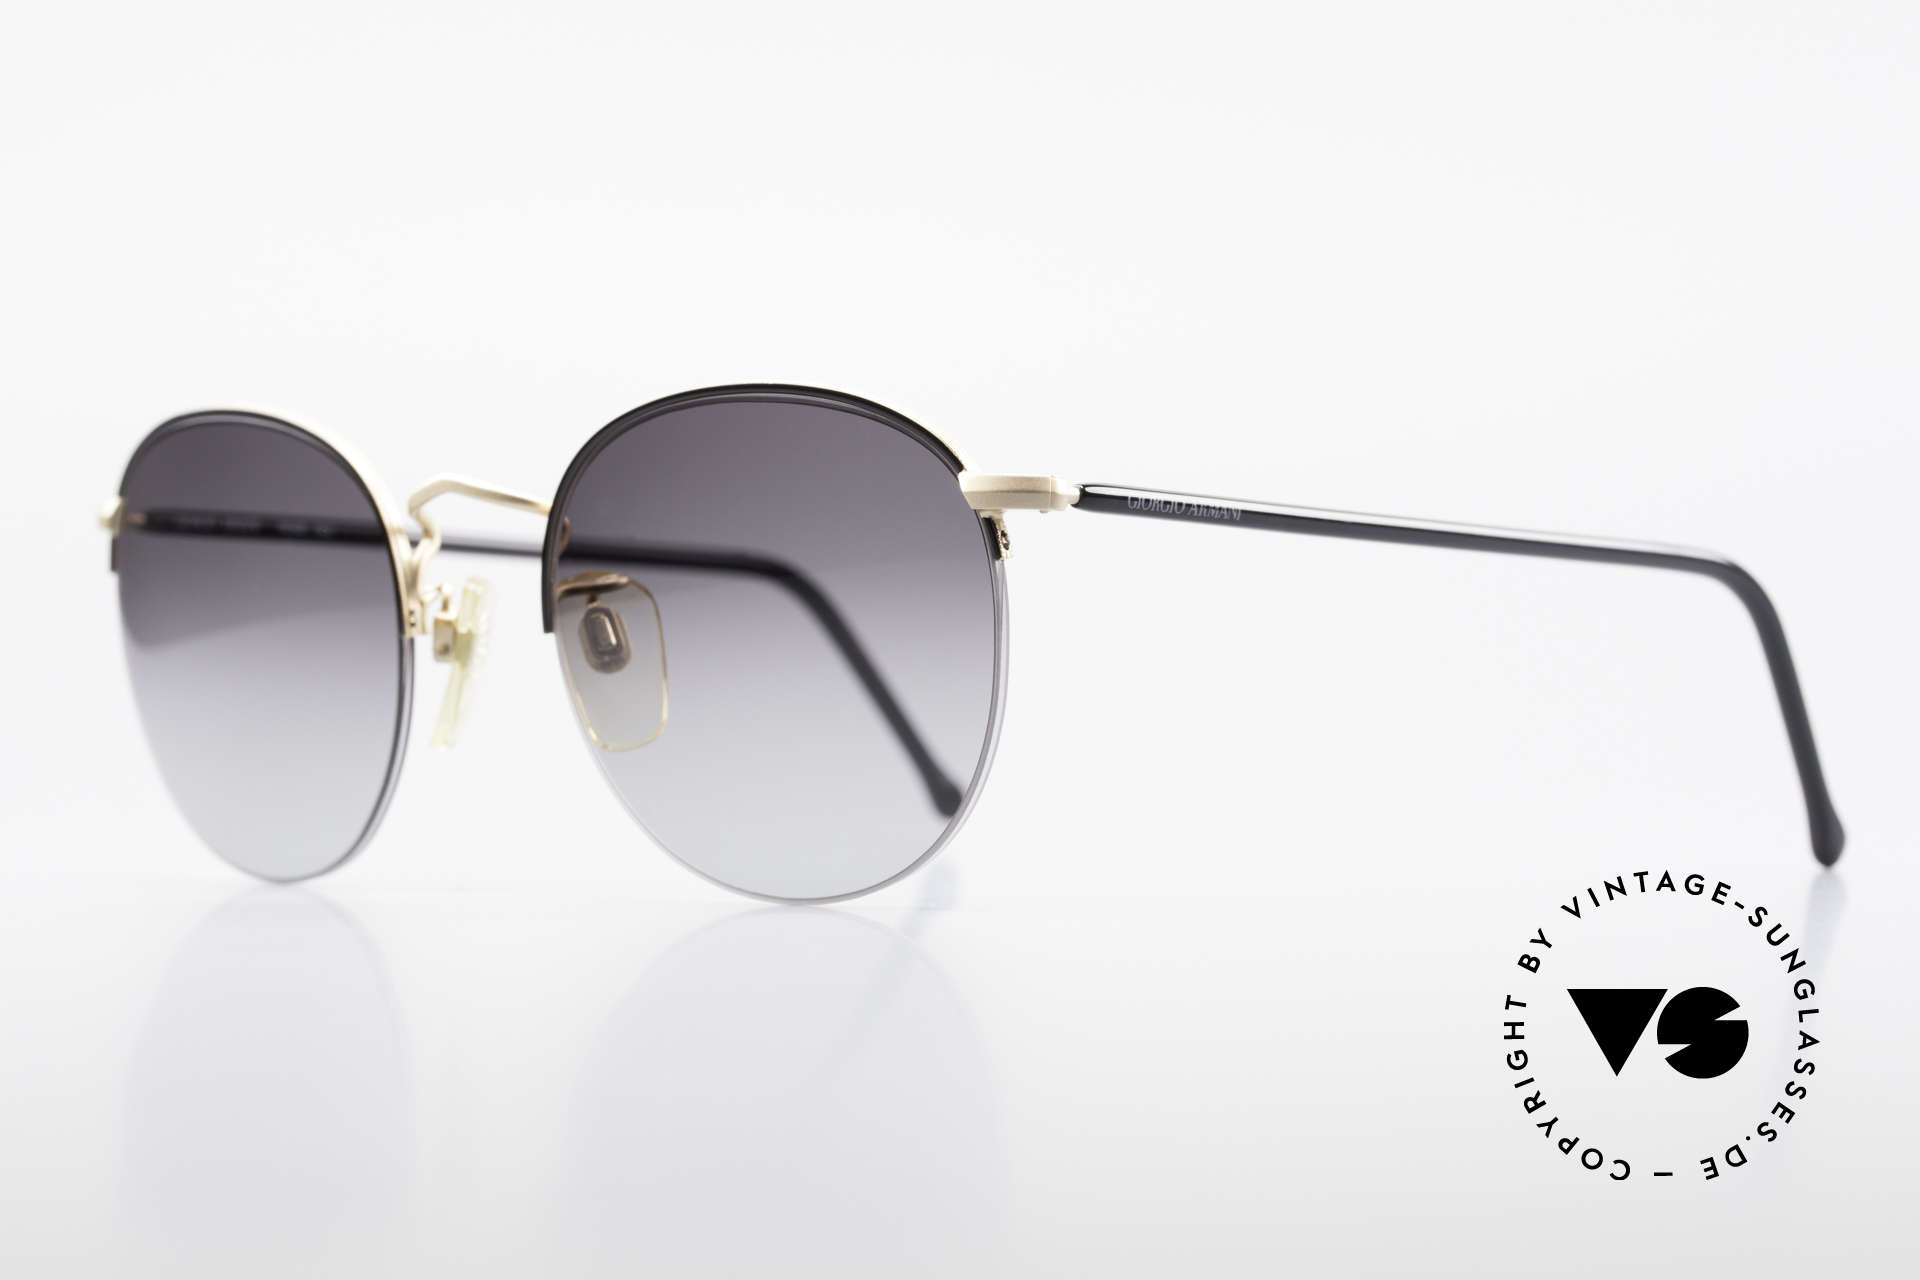 Giorgio Armani 142 Rimless Panto Sunglasses 80's, the lenses are fixed with a nylor thread at the frame, Made for Men